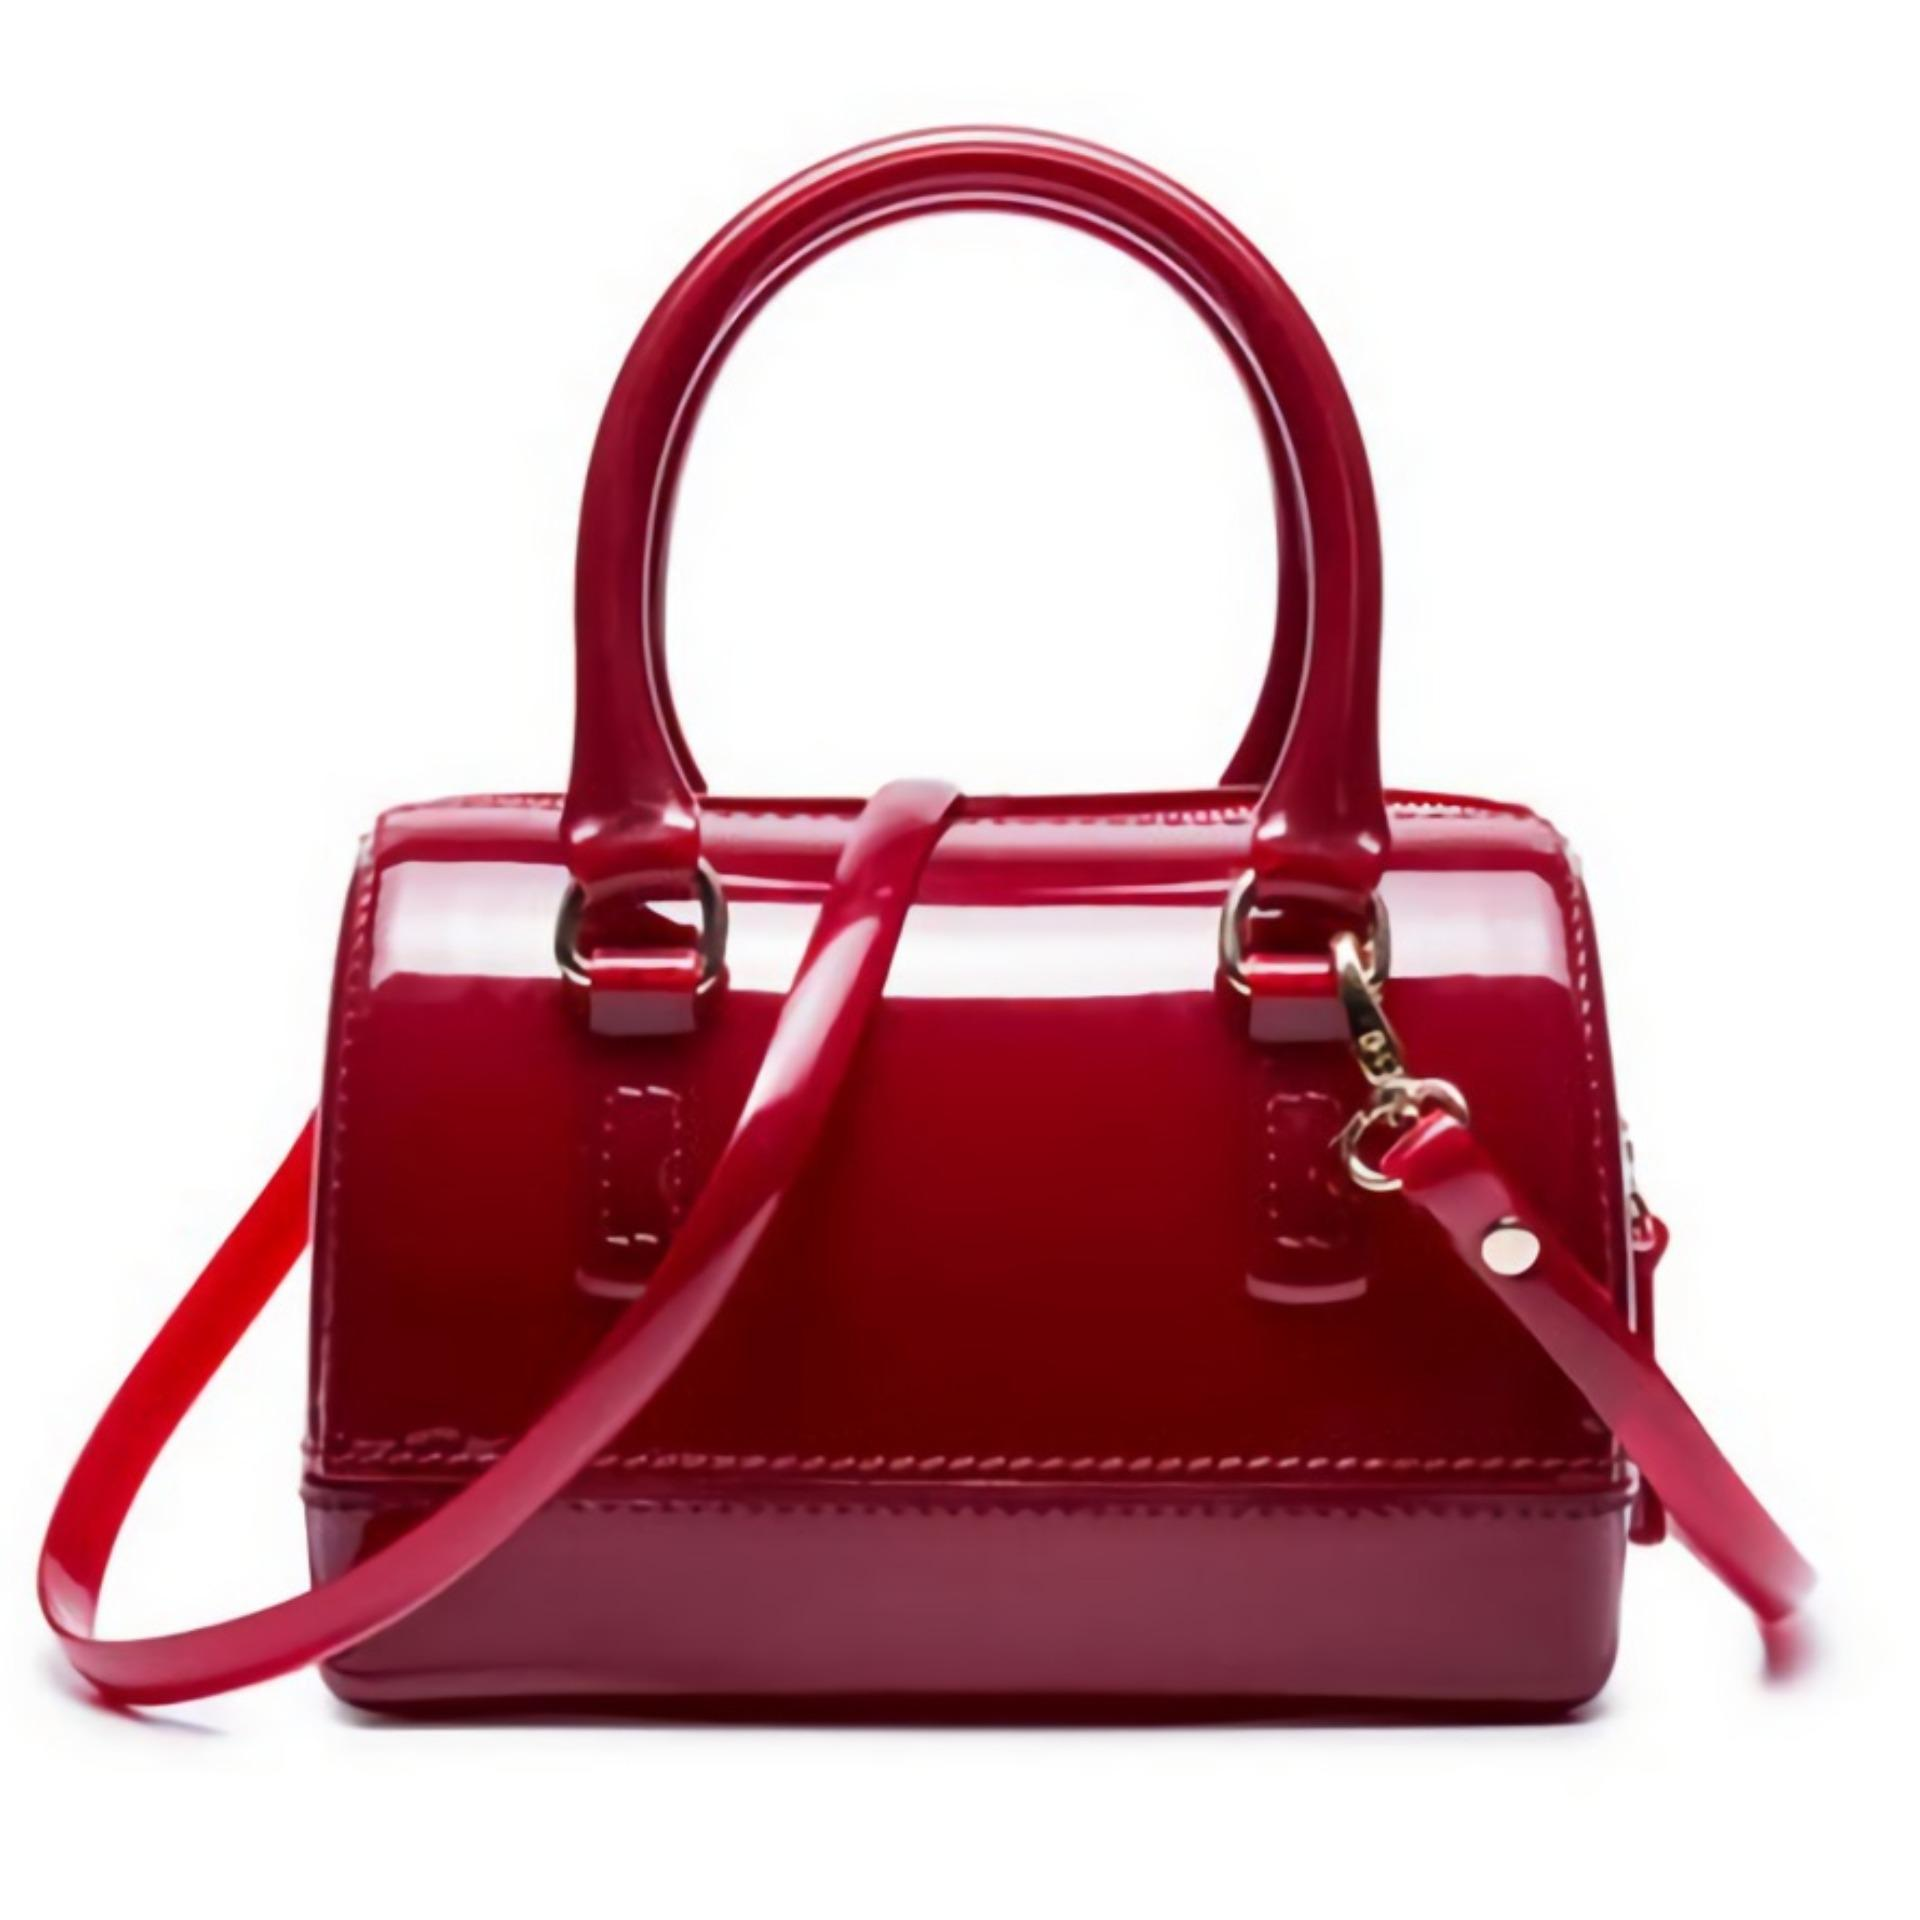 JCF Tas Fashion Anak Remaja Dan Dewasa Belle Jelly Sling Teenager And Adult Mini Candy Bag - Red Maroon